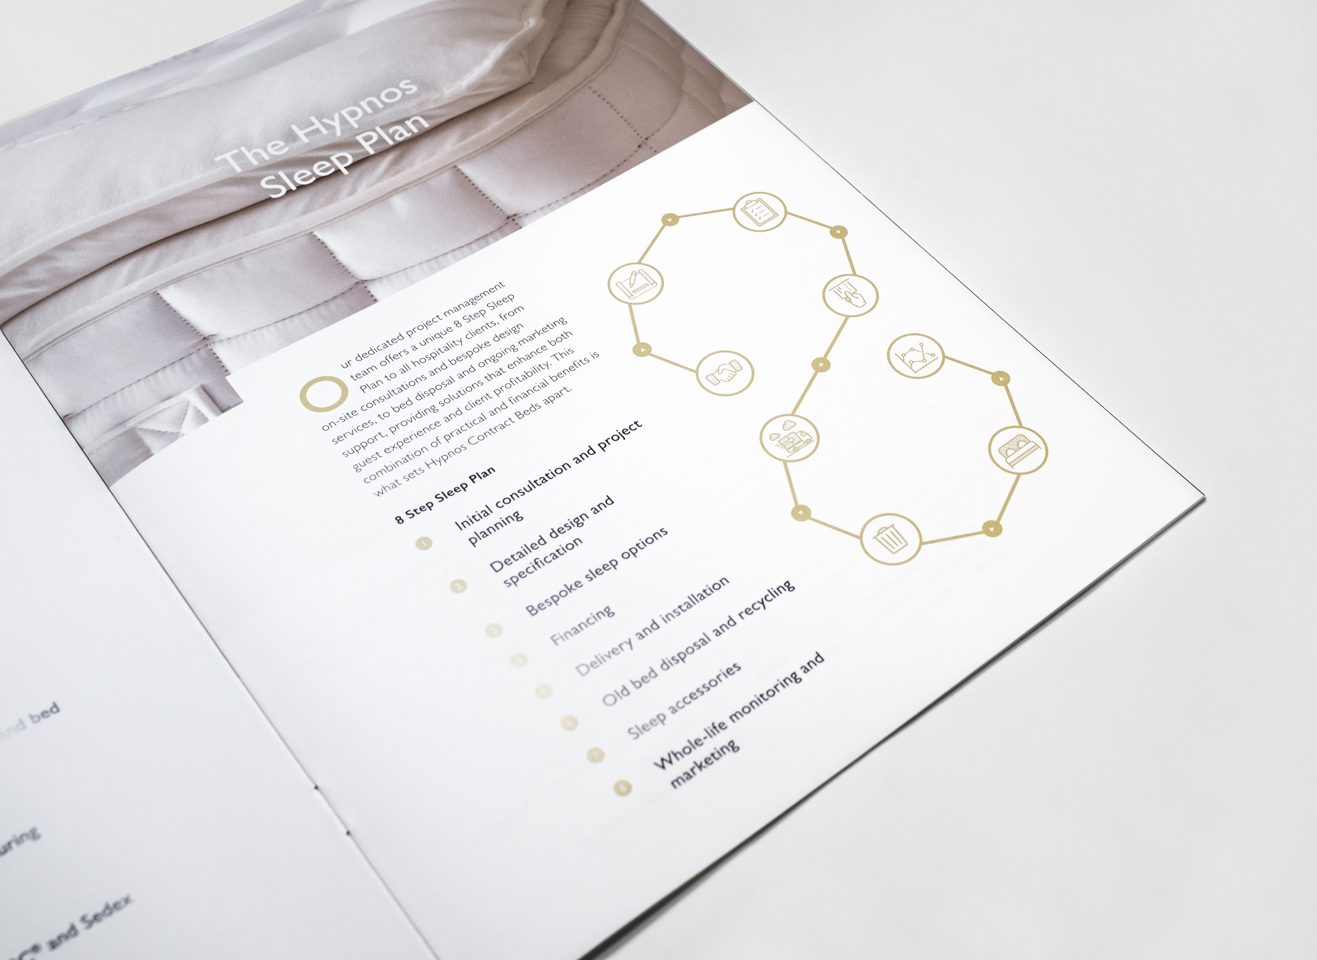 Hypnos Contract Beds Brochure